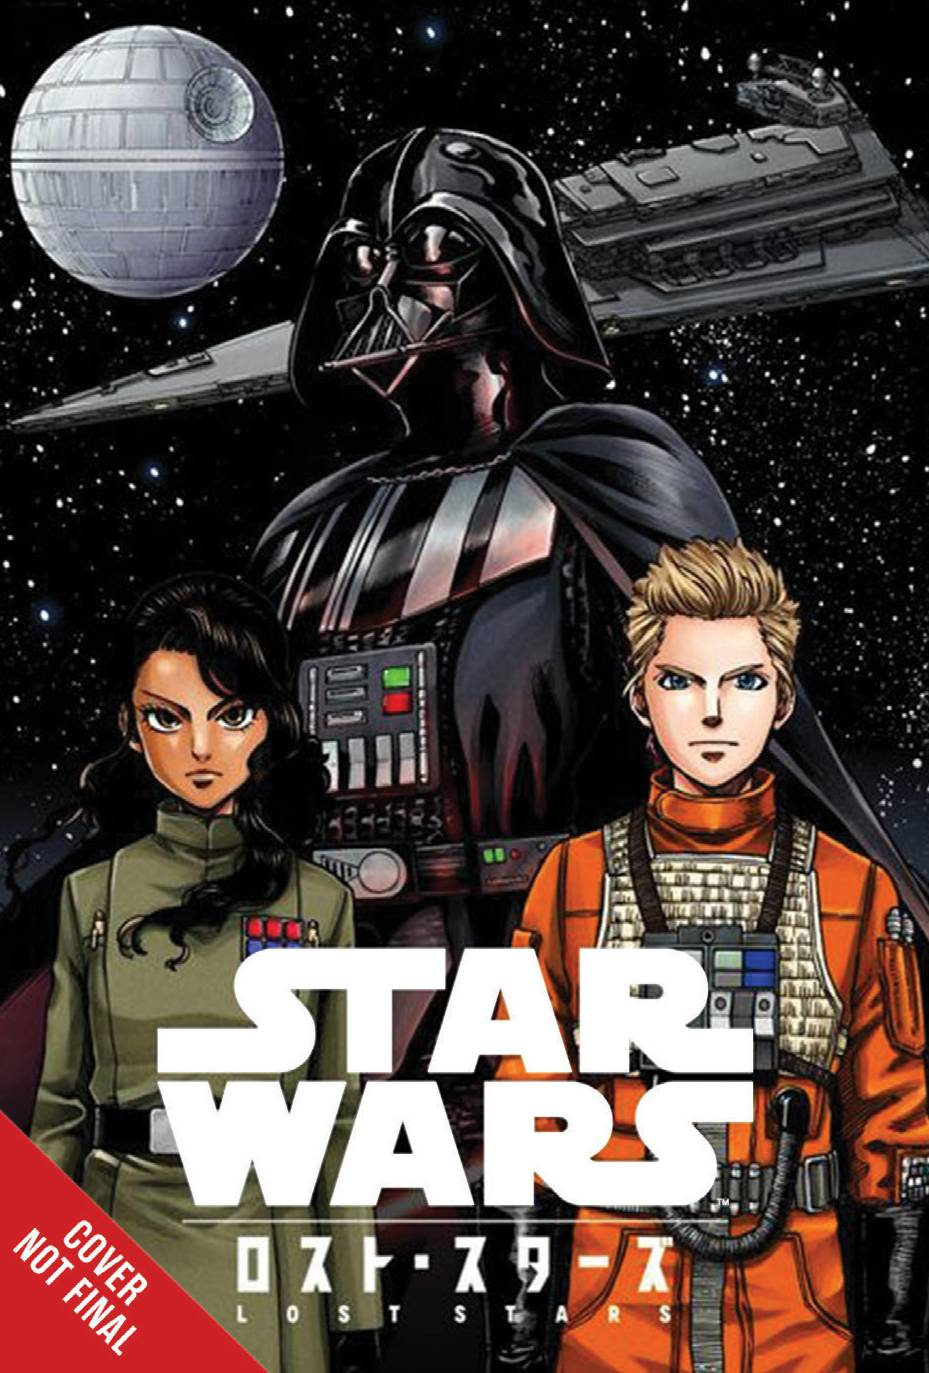 STAR WARS LOST STARS GN VOL 01